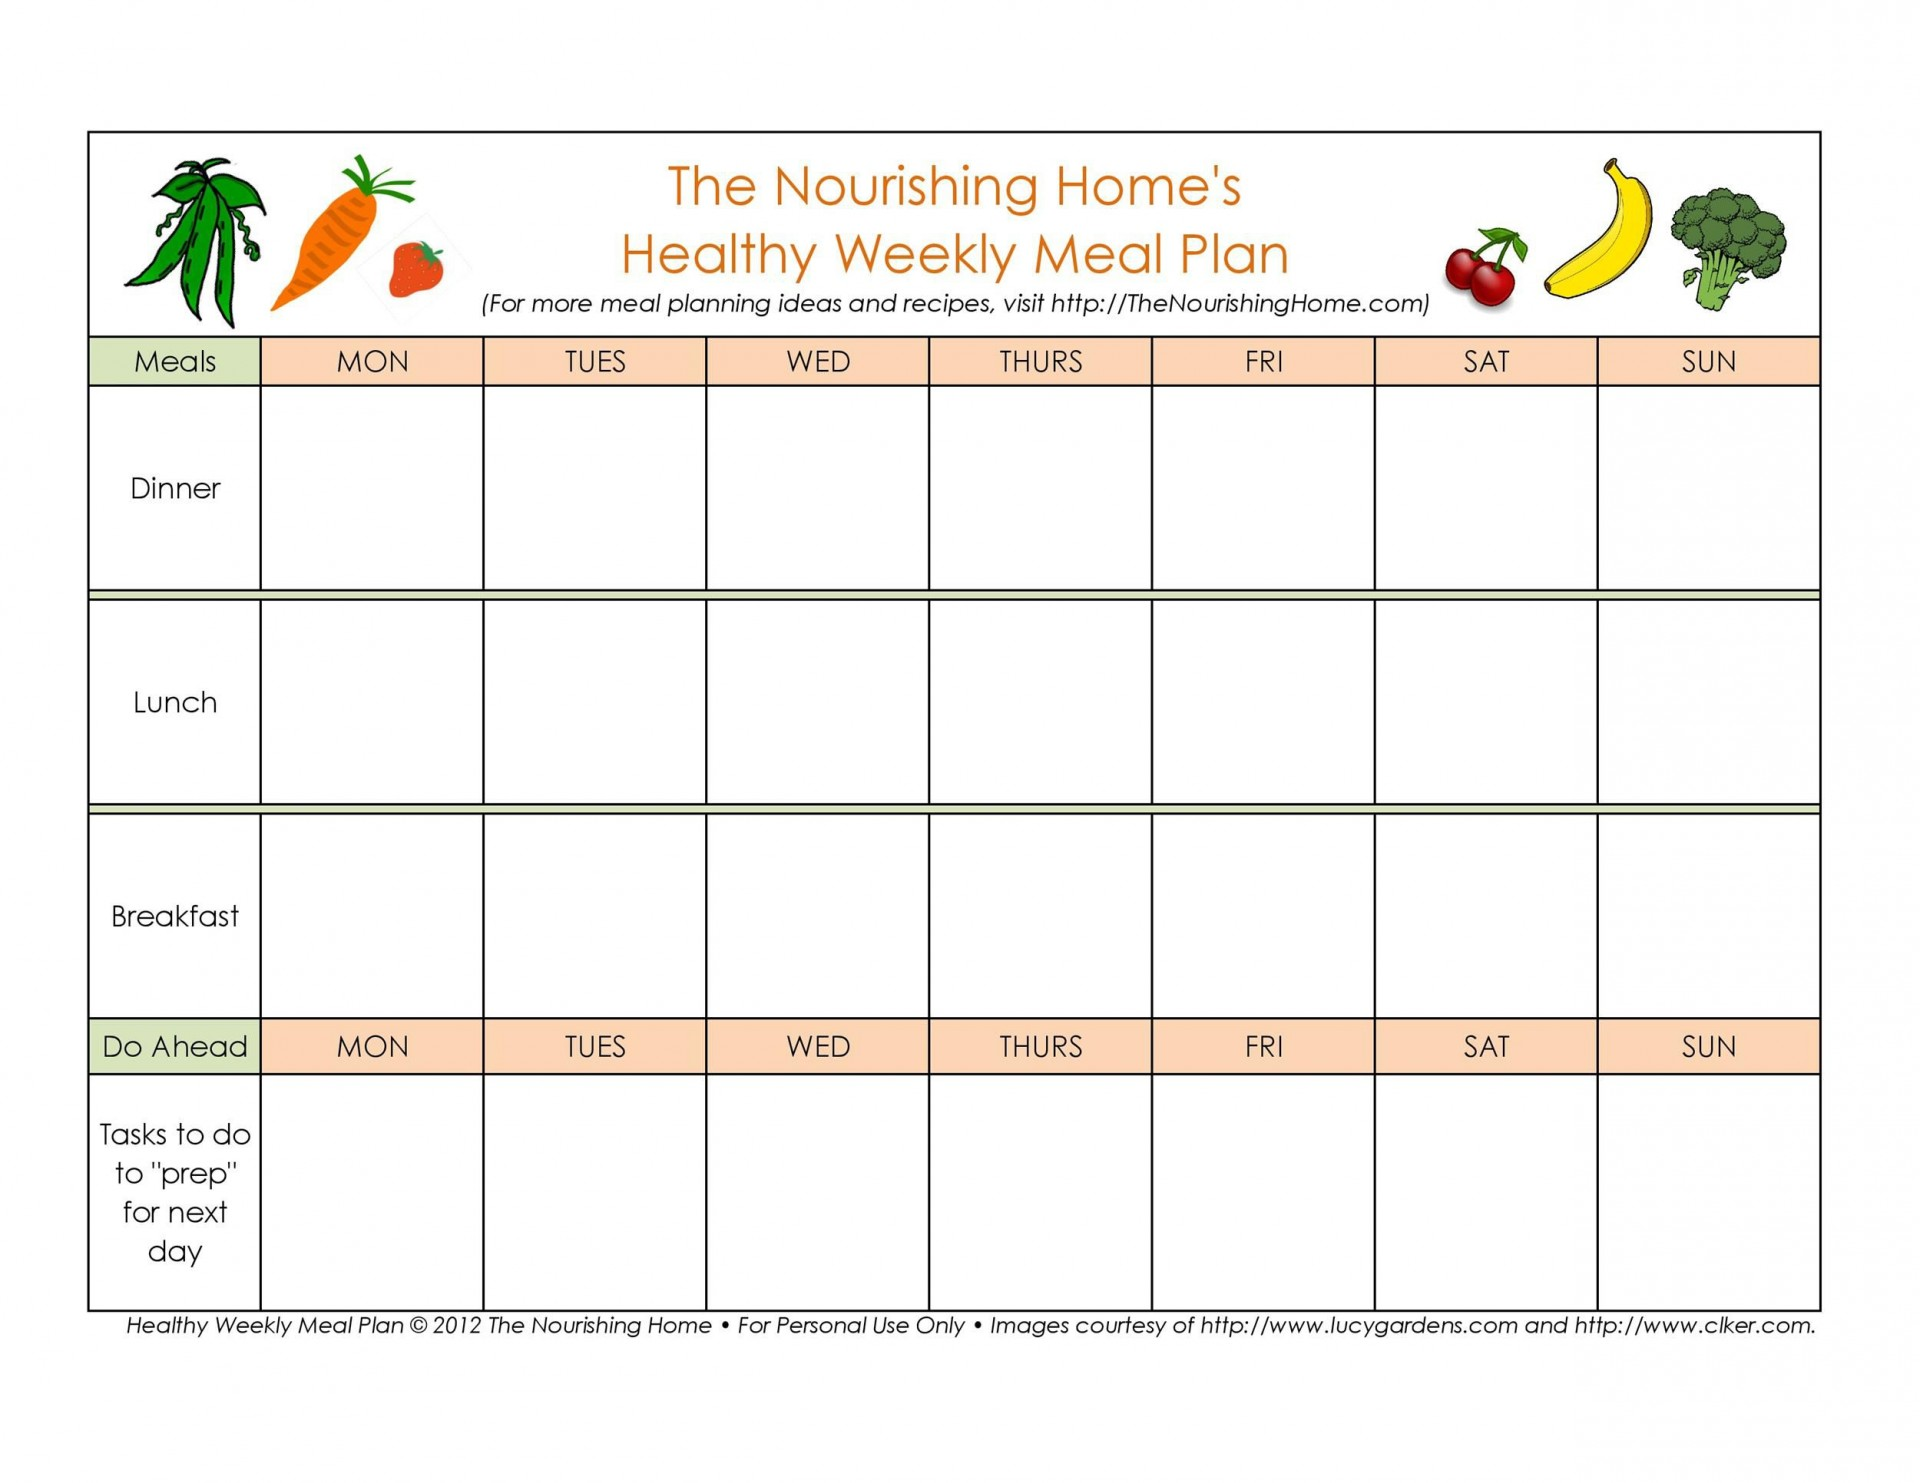 005 Phenomenal Free Meal Plan Template Photo  Templates Easy Keto Printable Planner For Weight Los1920